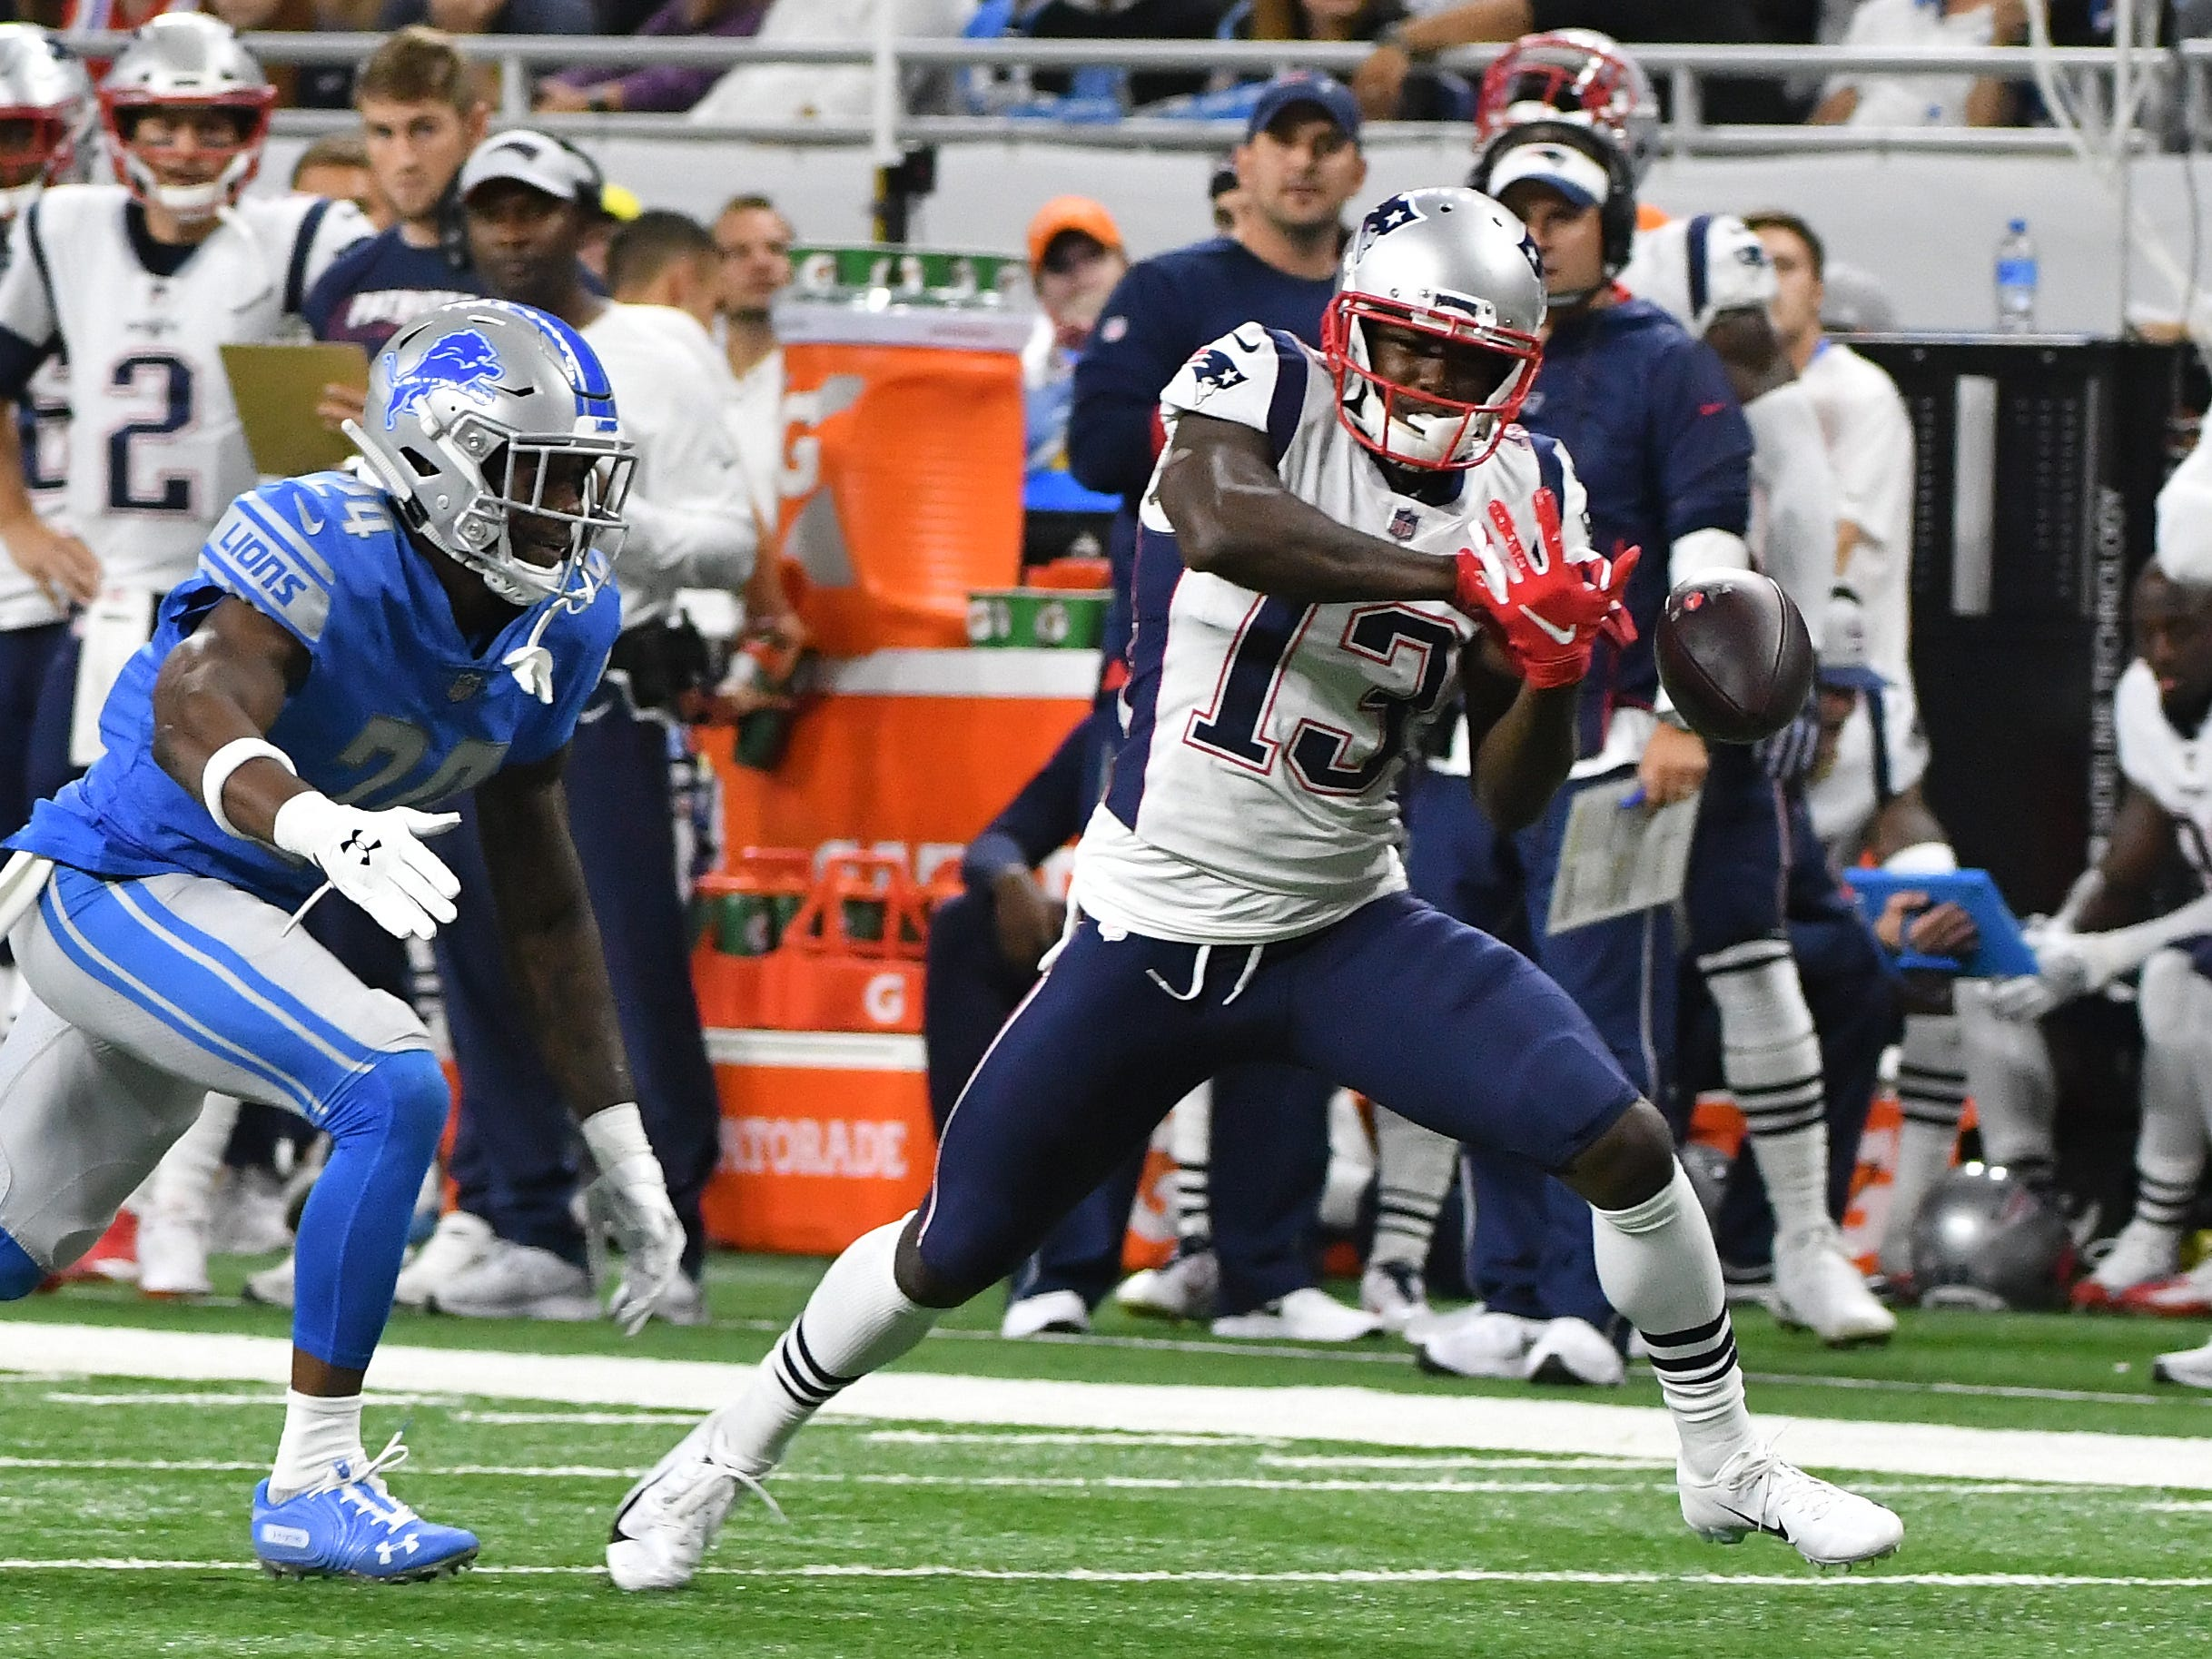 Patriots' Phillip Dorsett can't hang onto a pass that hits his hands with Lions corner back Kevin Lawson defending int he first quarter.